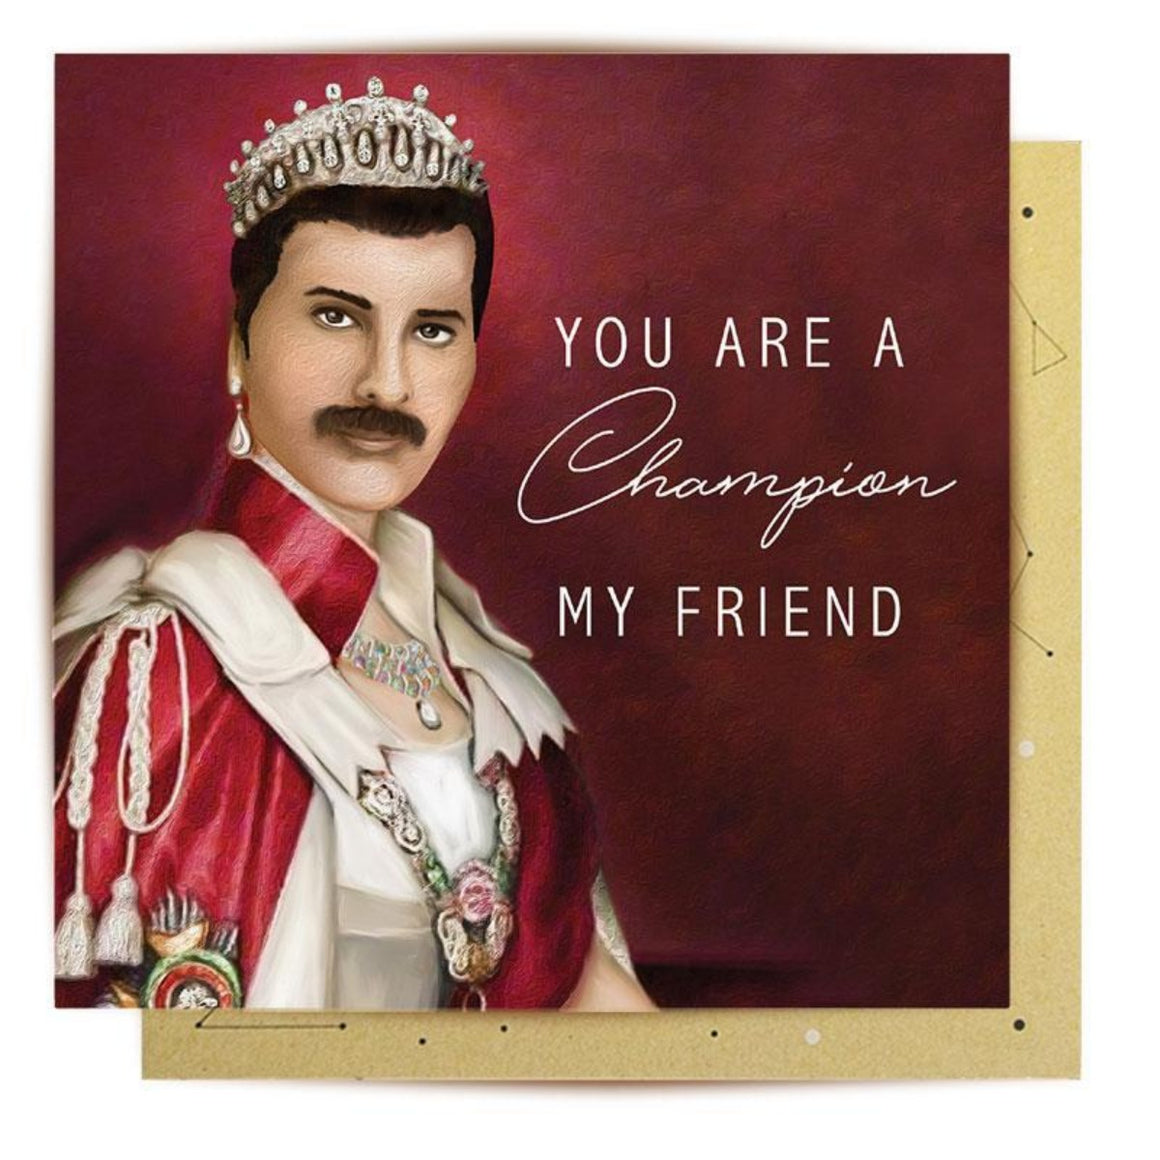 Greeting Card featuring illustration of Freddy Mercury and the words you are a champion my friend